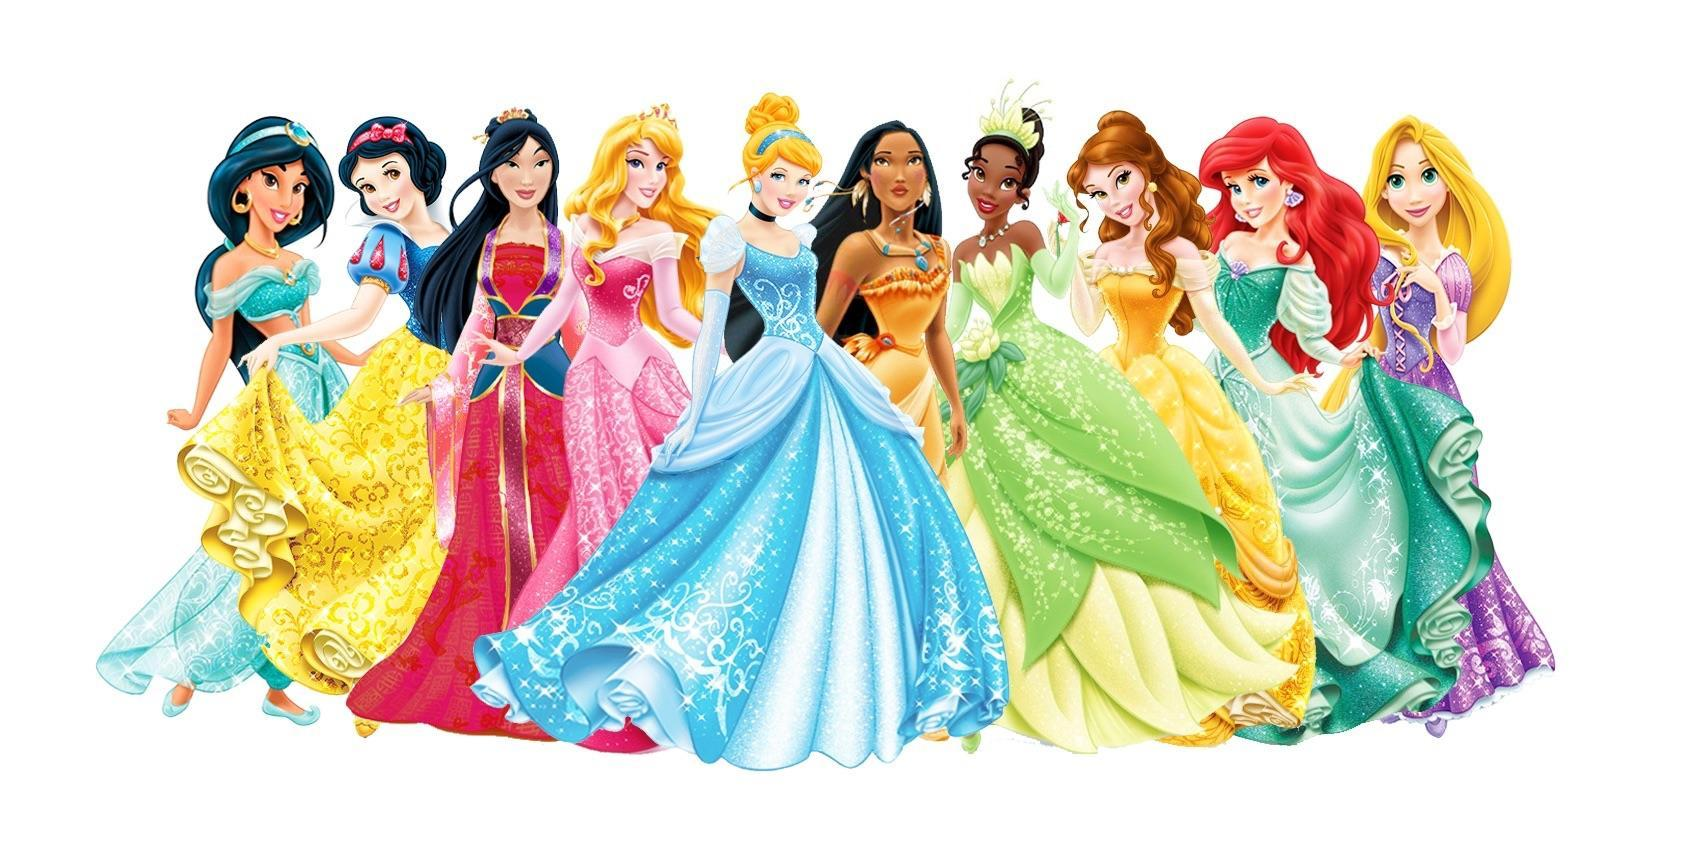 Who is the best Disney princess?